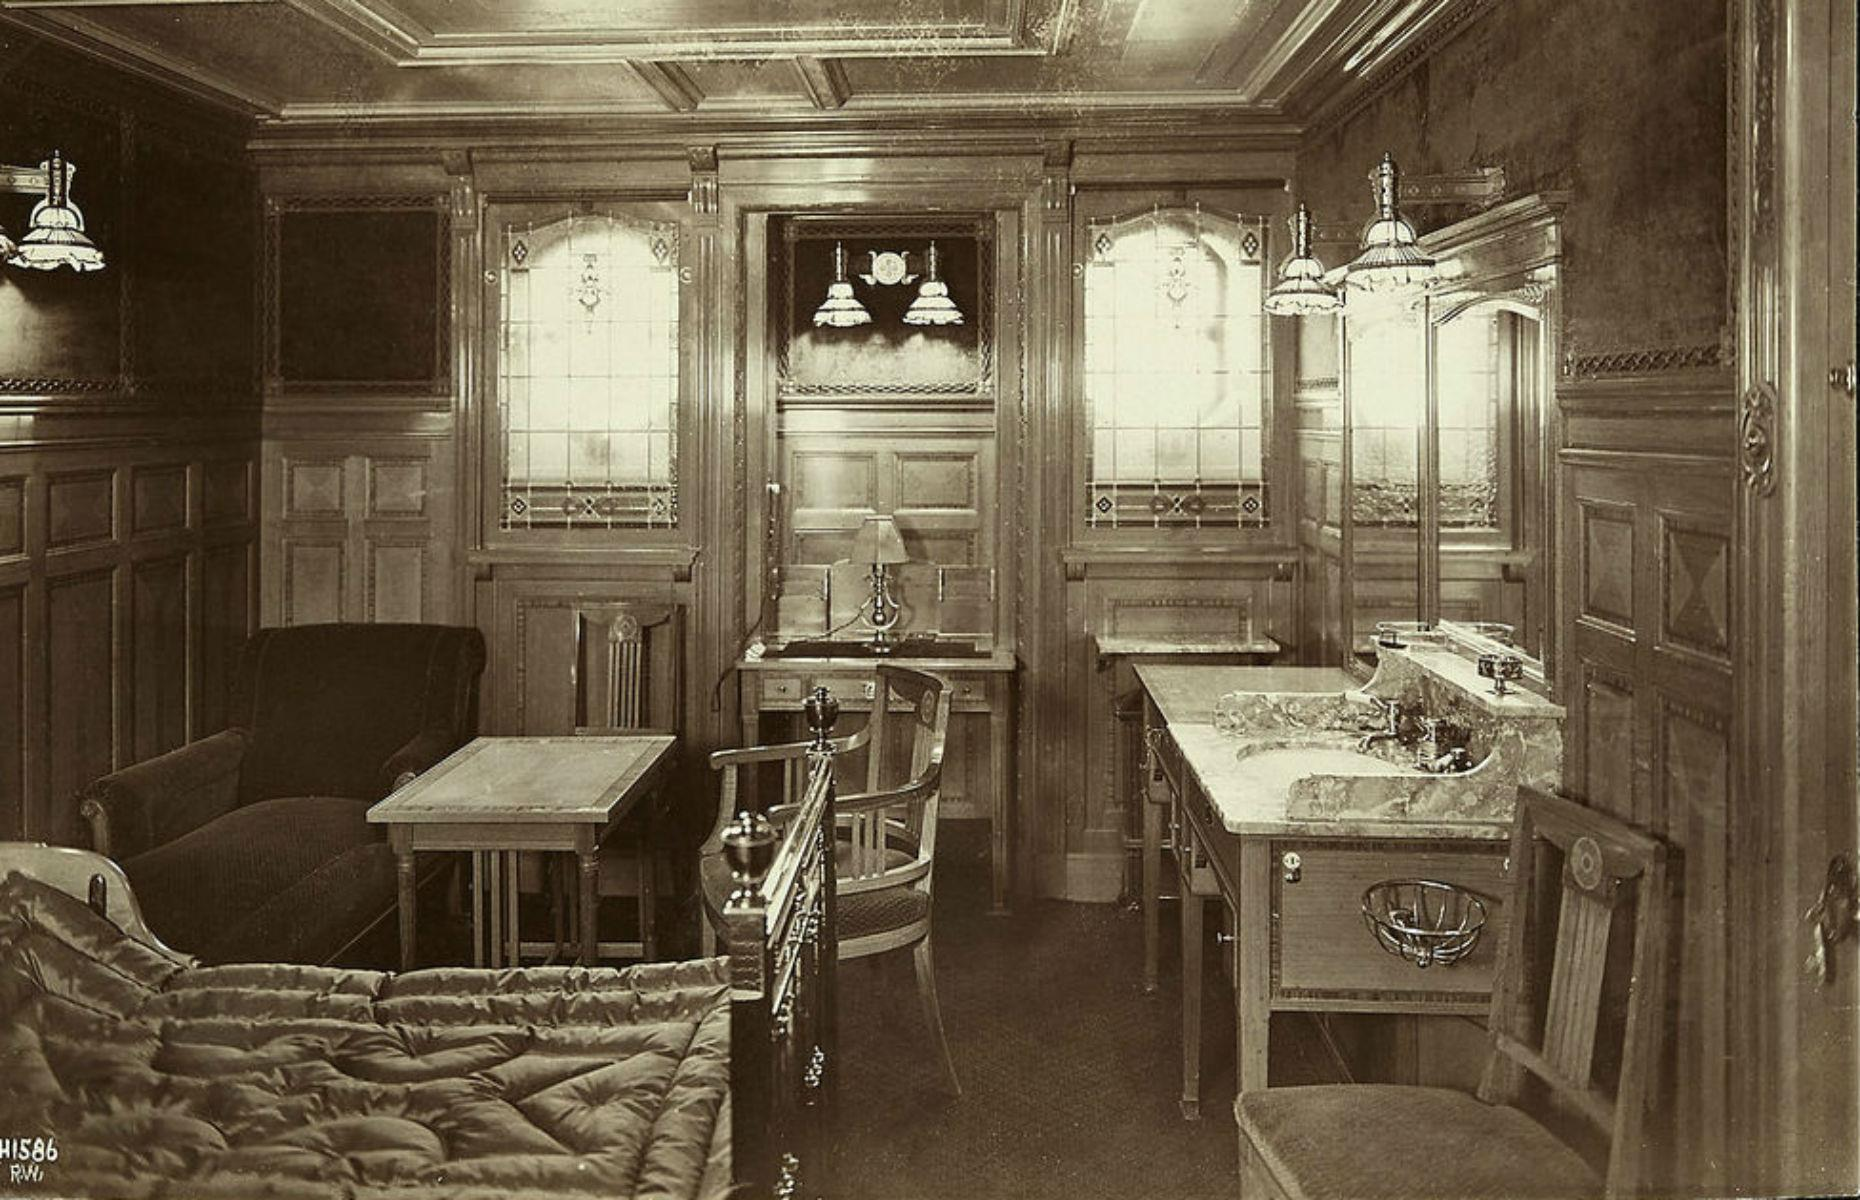 Slide 17 of 46: The most expensive rooms onboard were the four parlor suites located on B deck. Each had a lounge, two bedrooms, two closet rooms and a private bathroom and toilet. They offered the latest in modern electrical appliances including telephones and heaters.